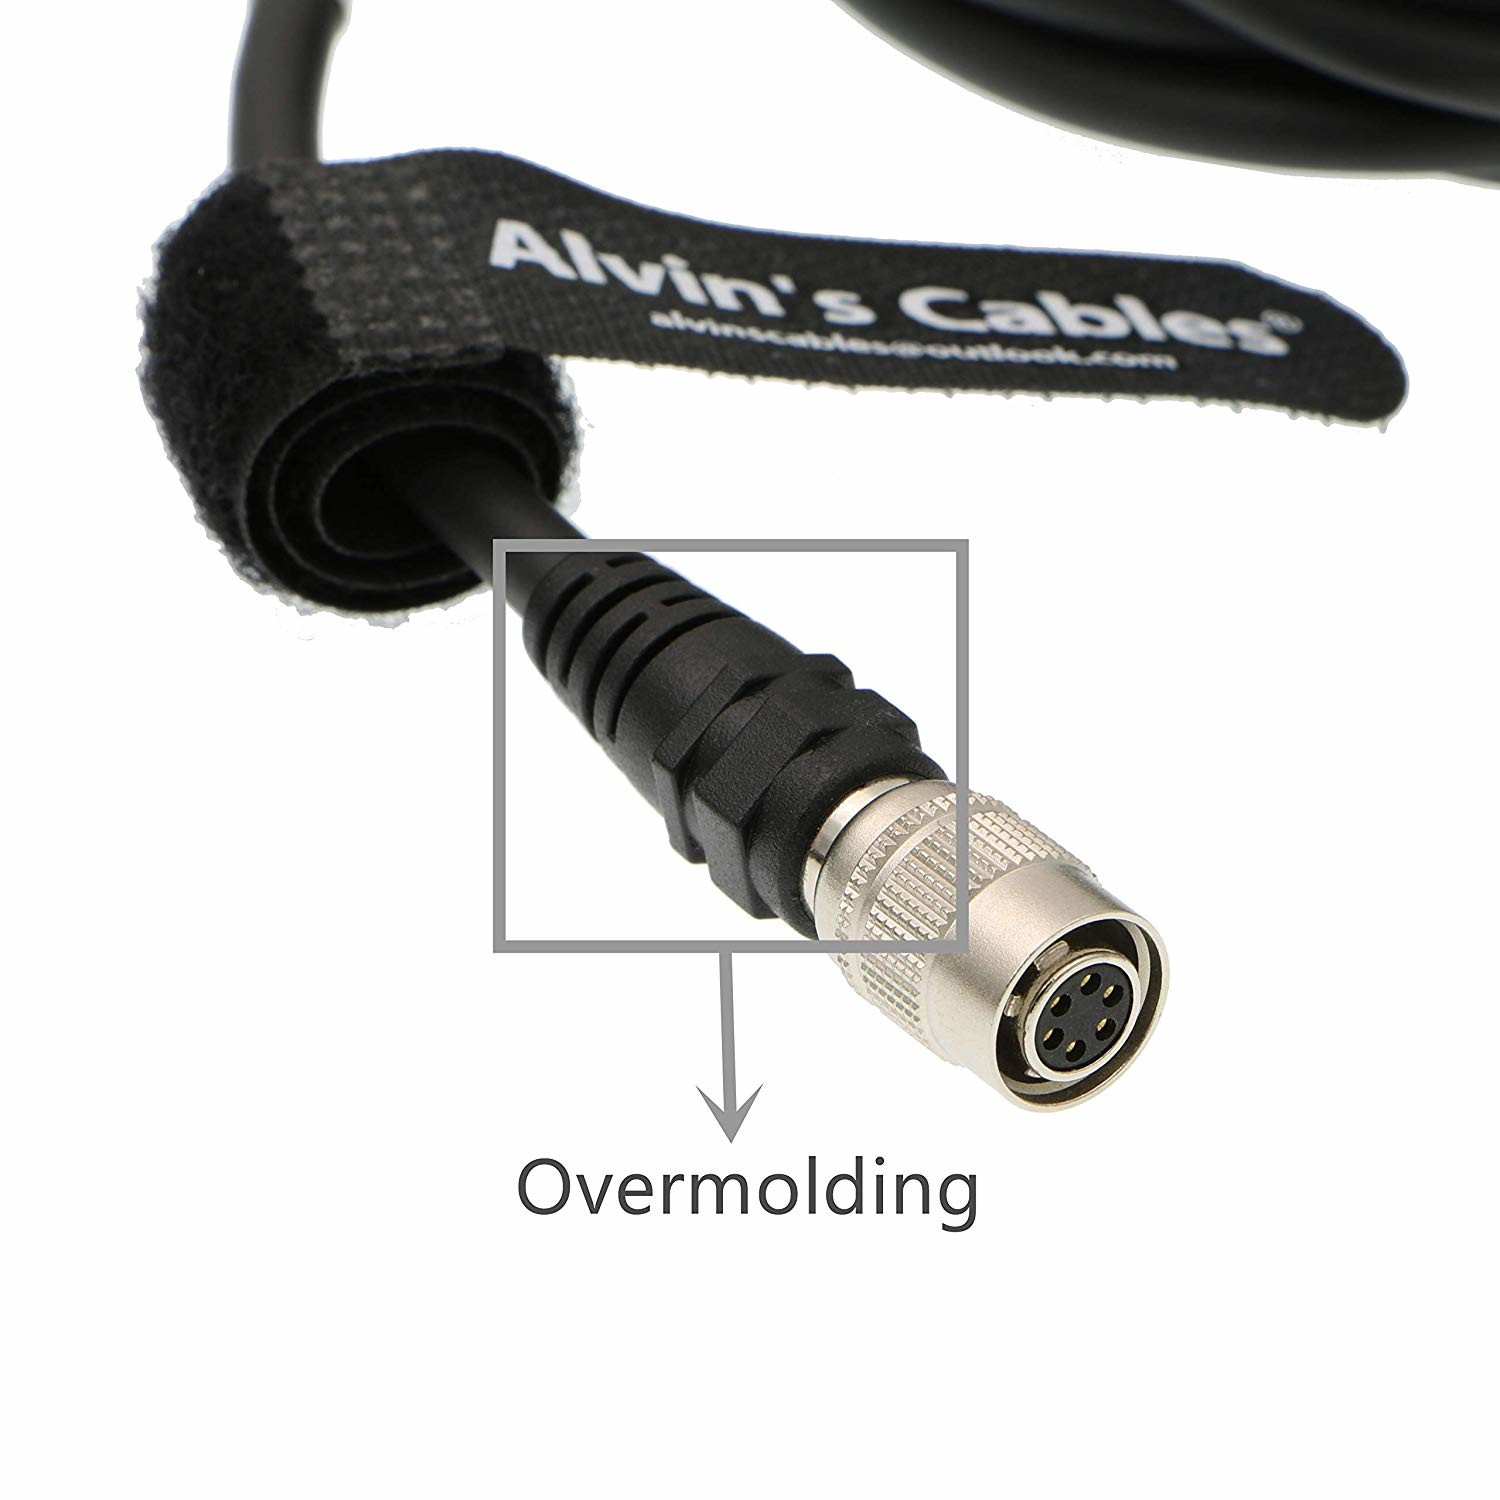 MCCAMSTORE 6Pin Hirose Female Cable Connector for Basler GIGE AVT CCD Camera Trigger Cable High Flex 2ft = 60cm